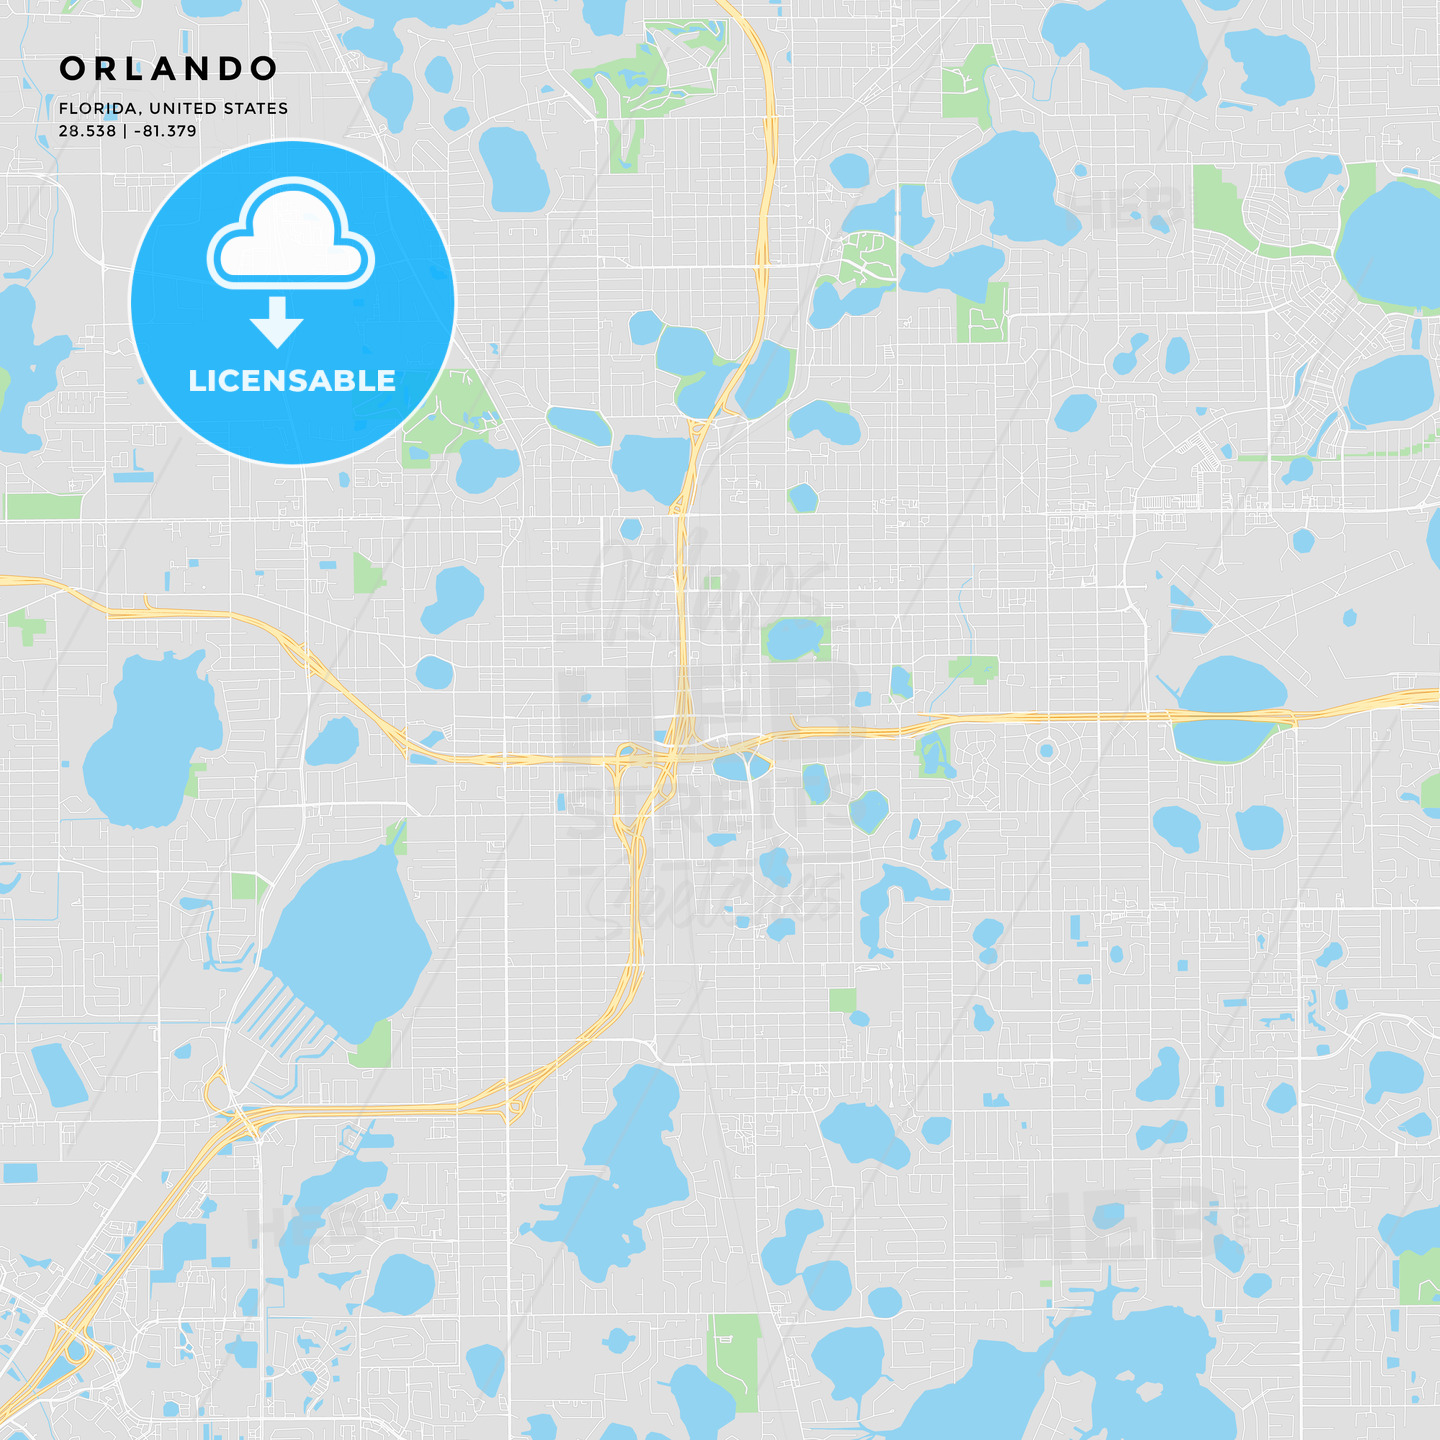 Printable street map of Orlando, Florida